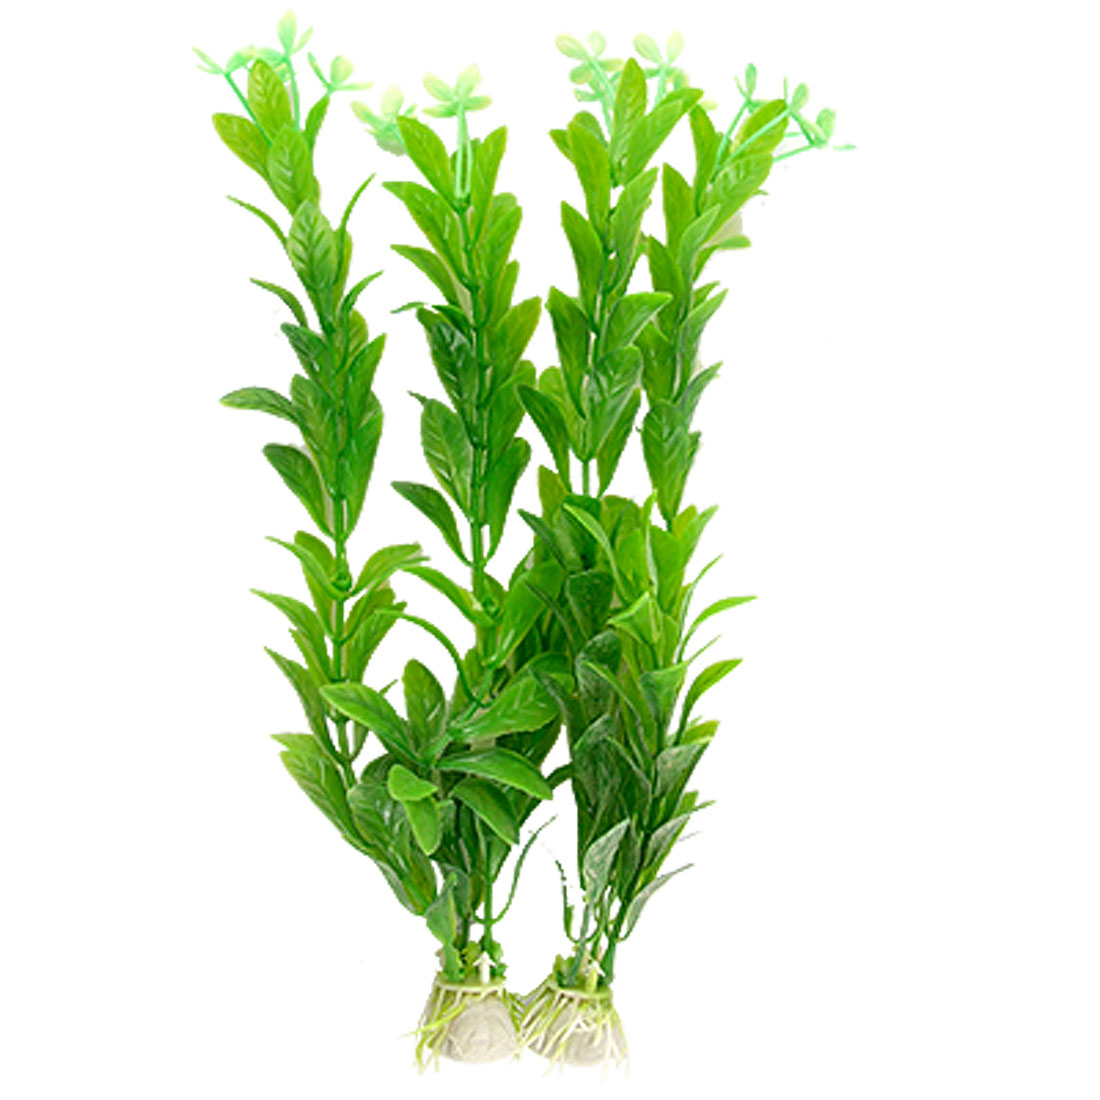 2 Pcs Green Oval Leaf Plastic Plant Aquascaping for Fish Tank